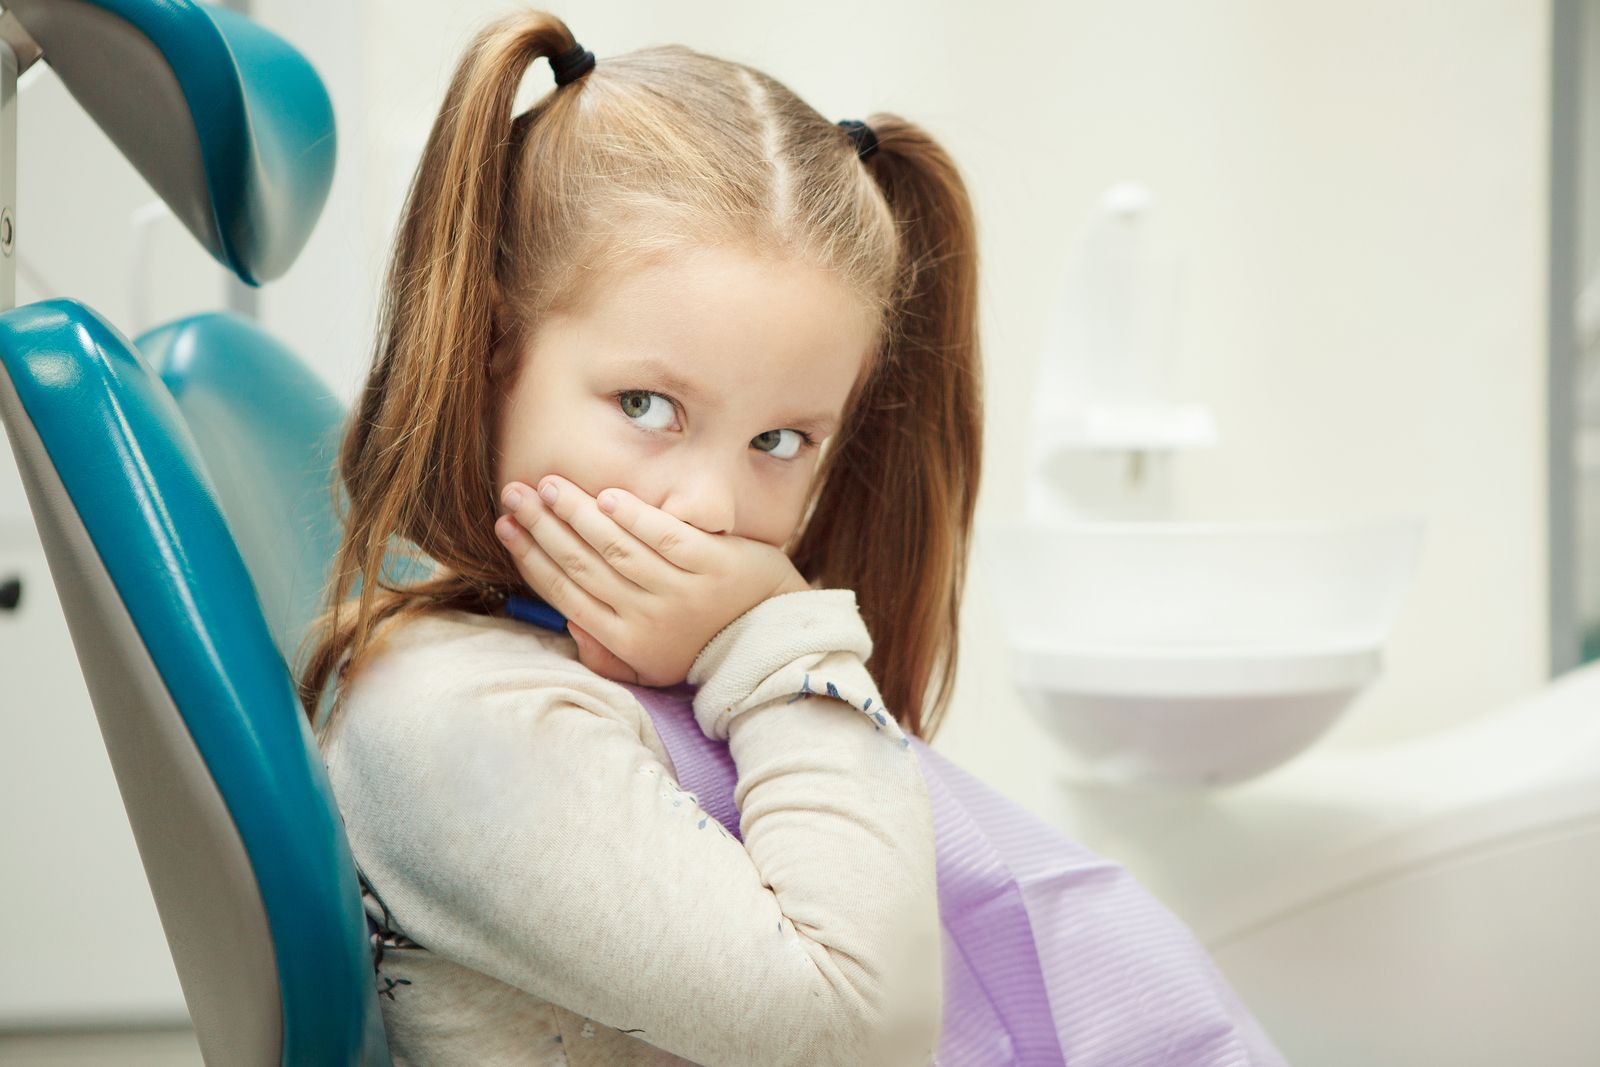 Some kids can be frightened of the dentist for no